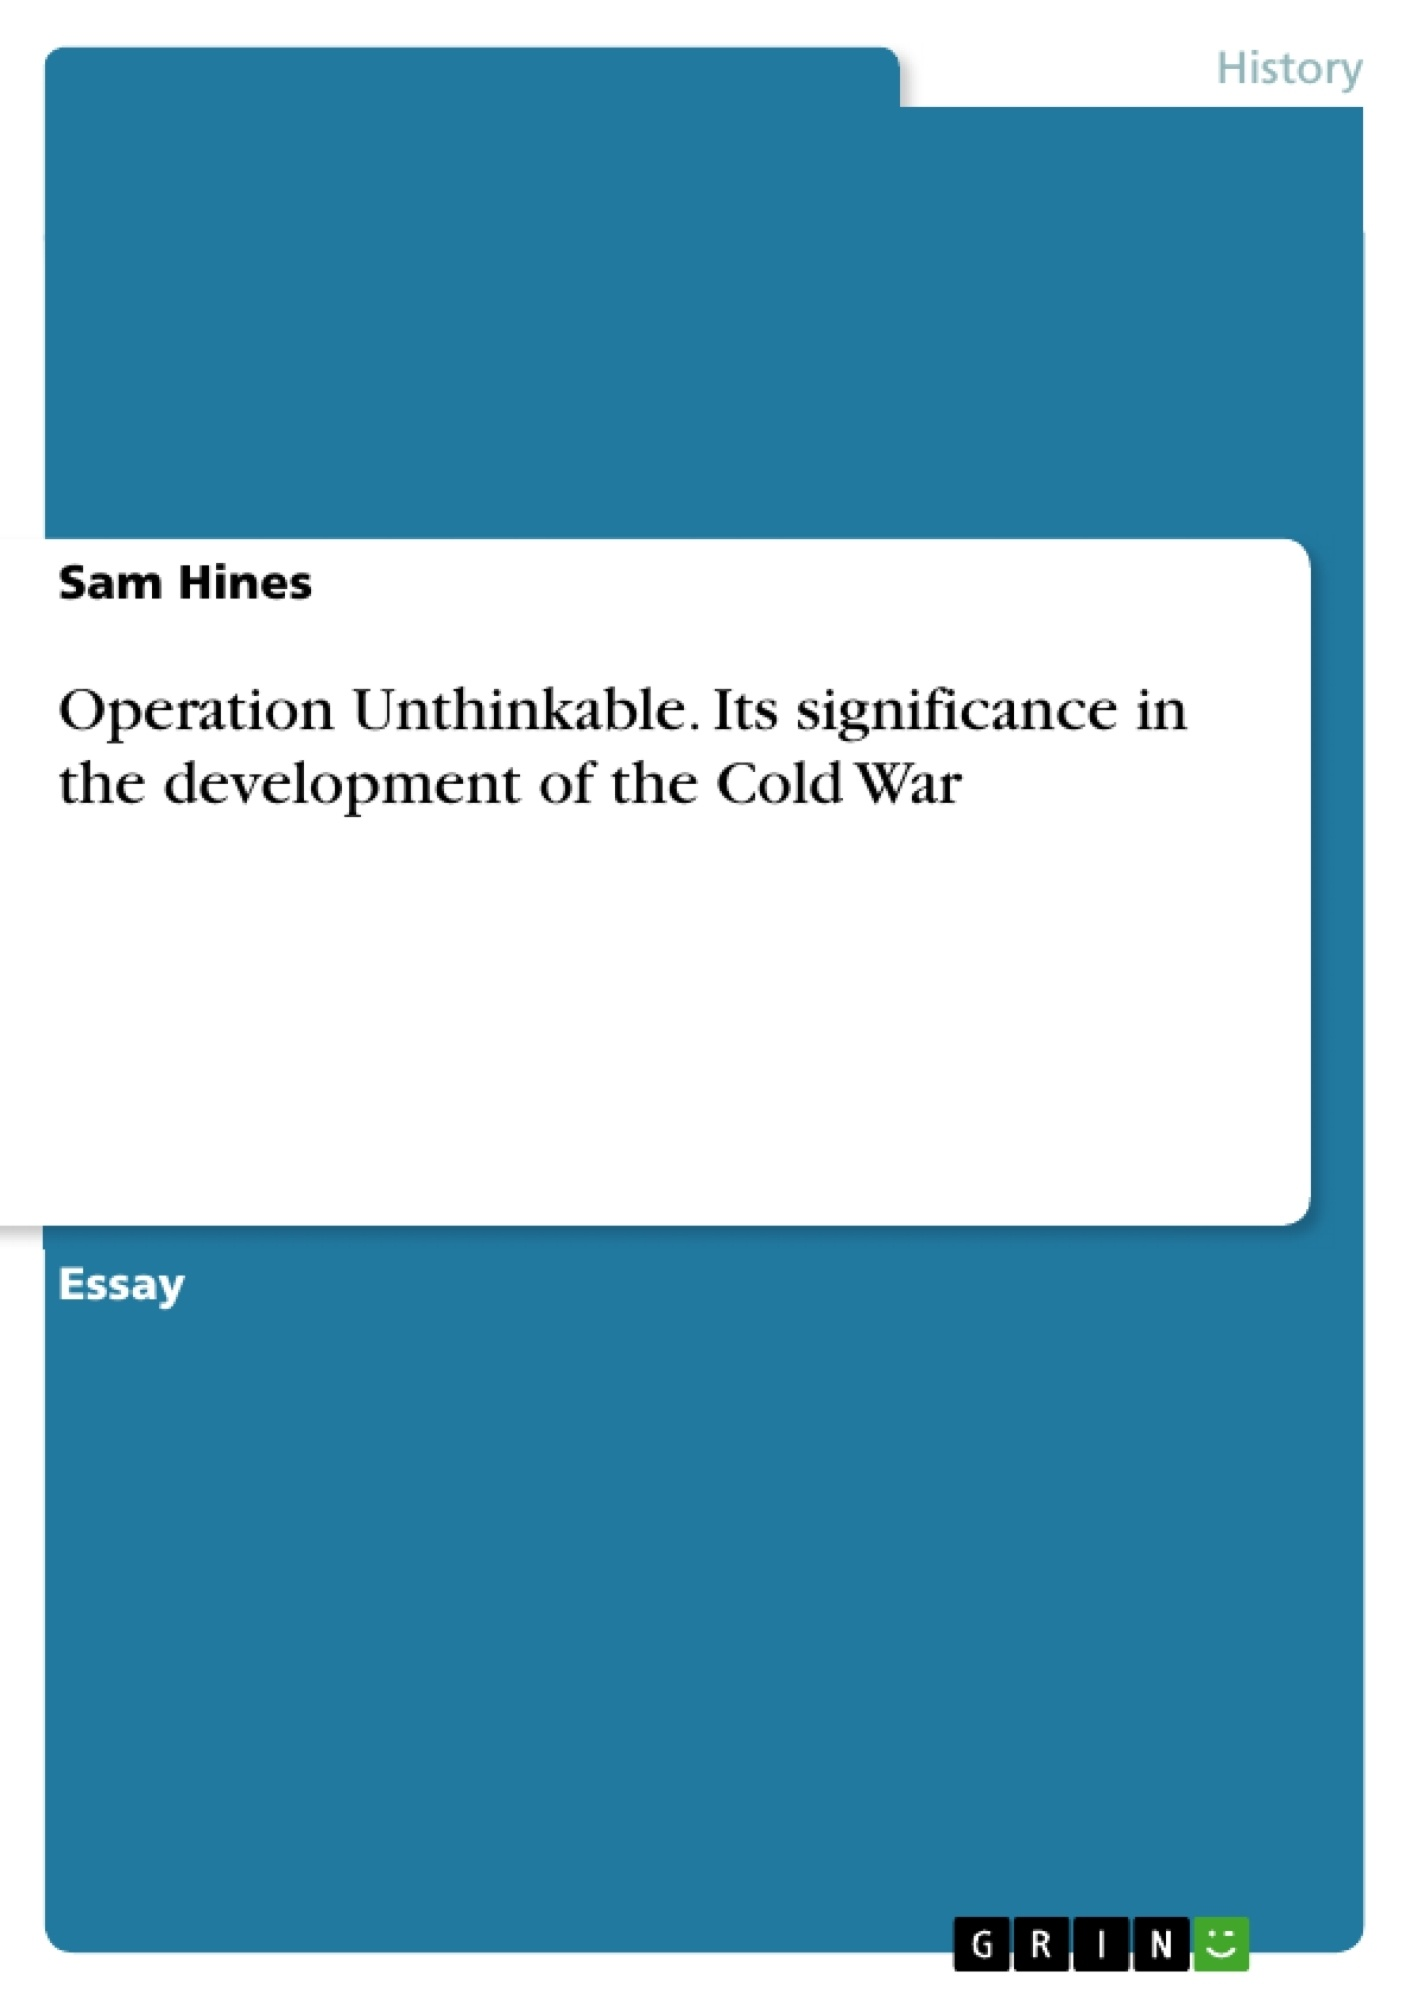 Title: Operation Unthinkable. Its significance in the development of the Cold War